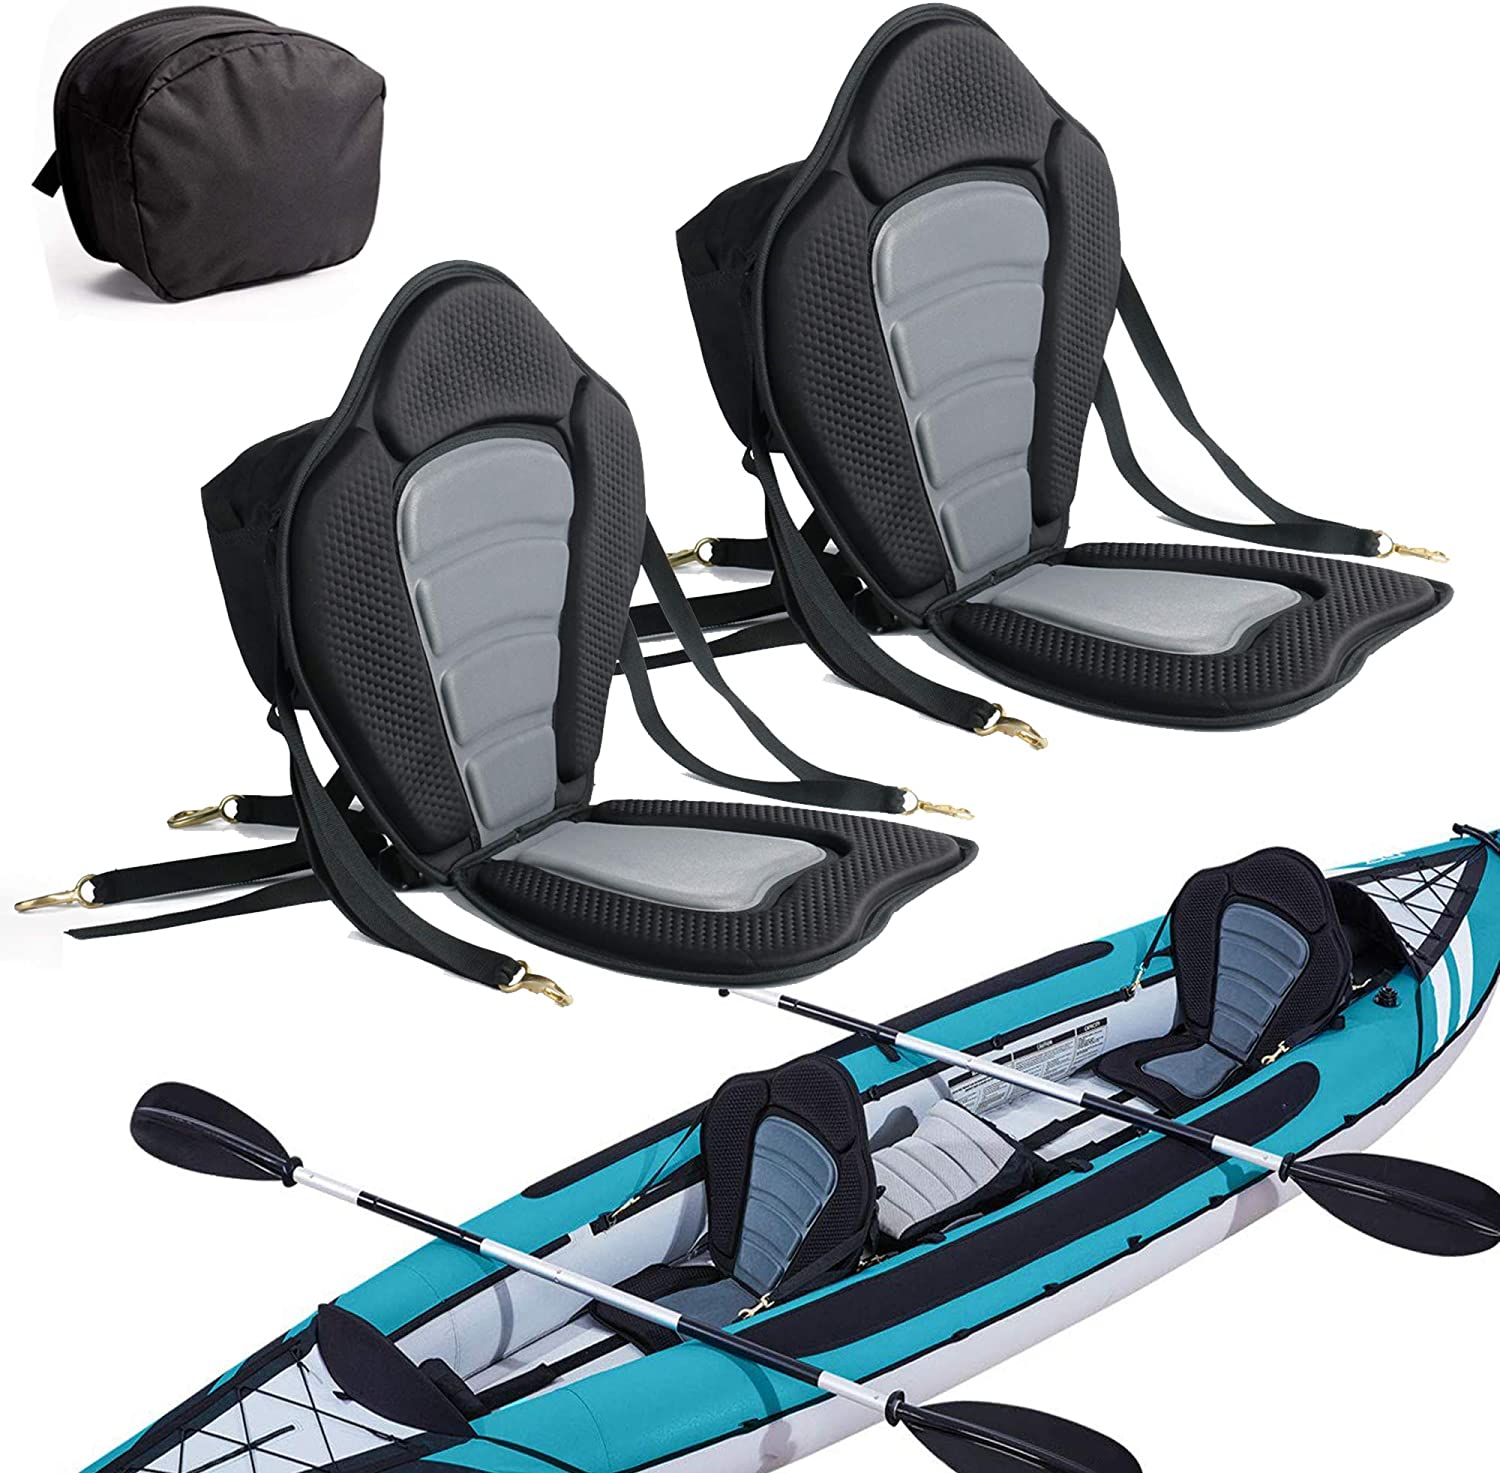 Details about  /Comfy Kayak Seat Adjustable Boat Backrest Seats Pad Cushion Accessories